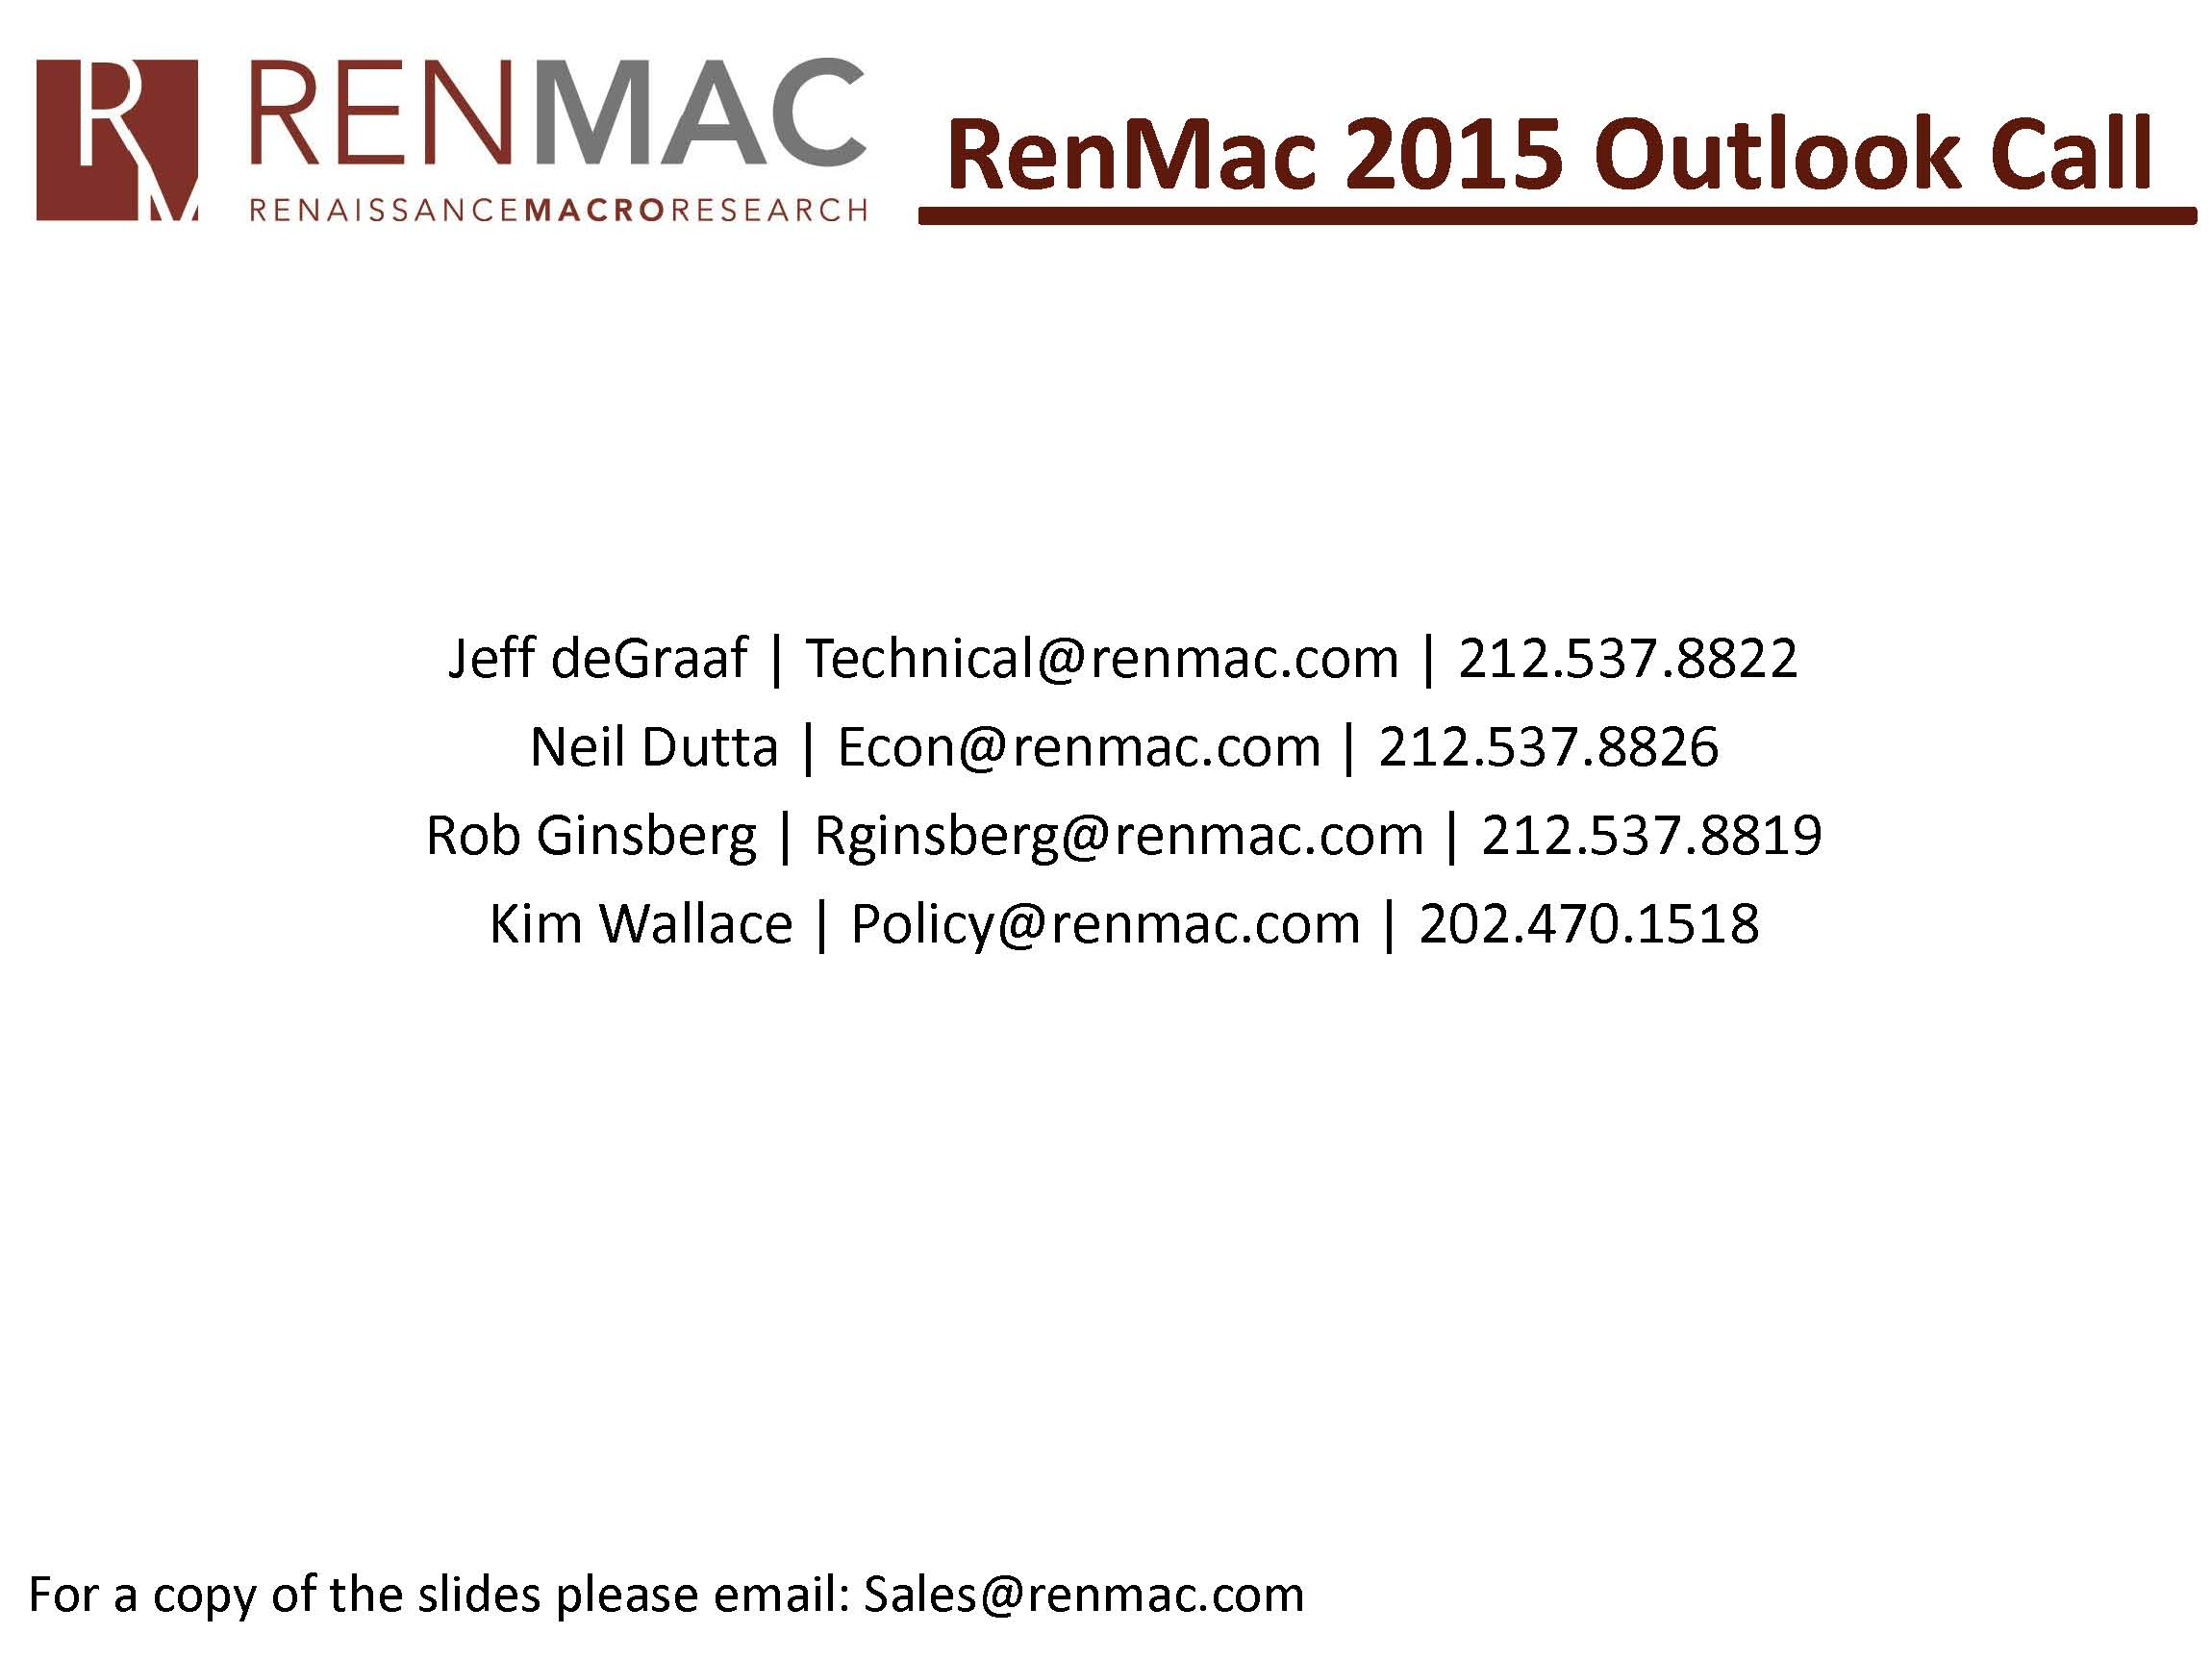 RenMac 2015 Outlook Call_Page_01